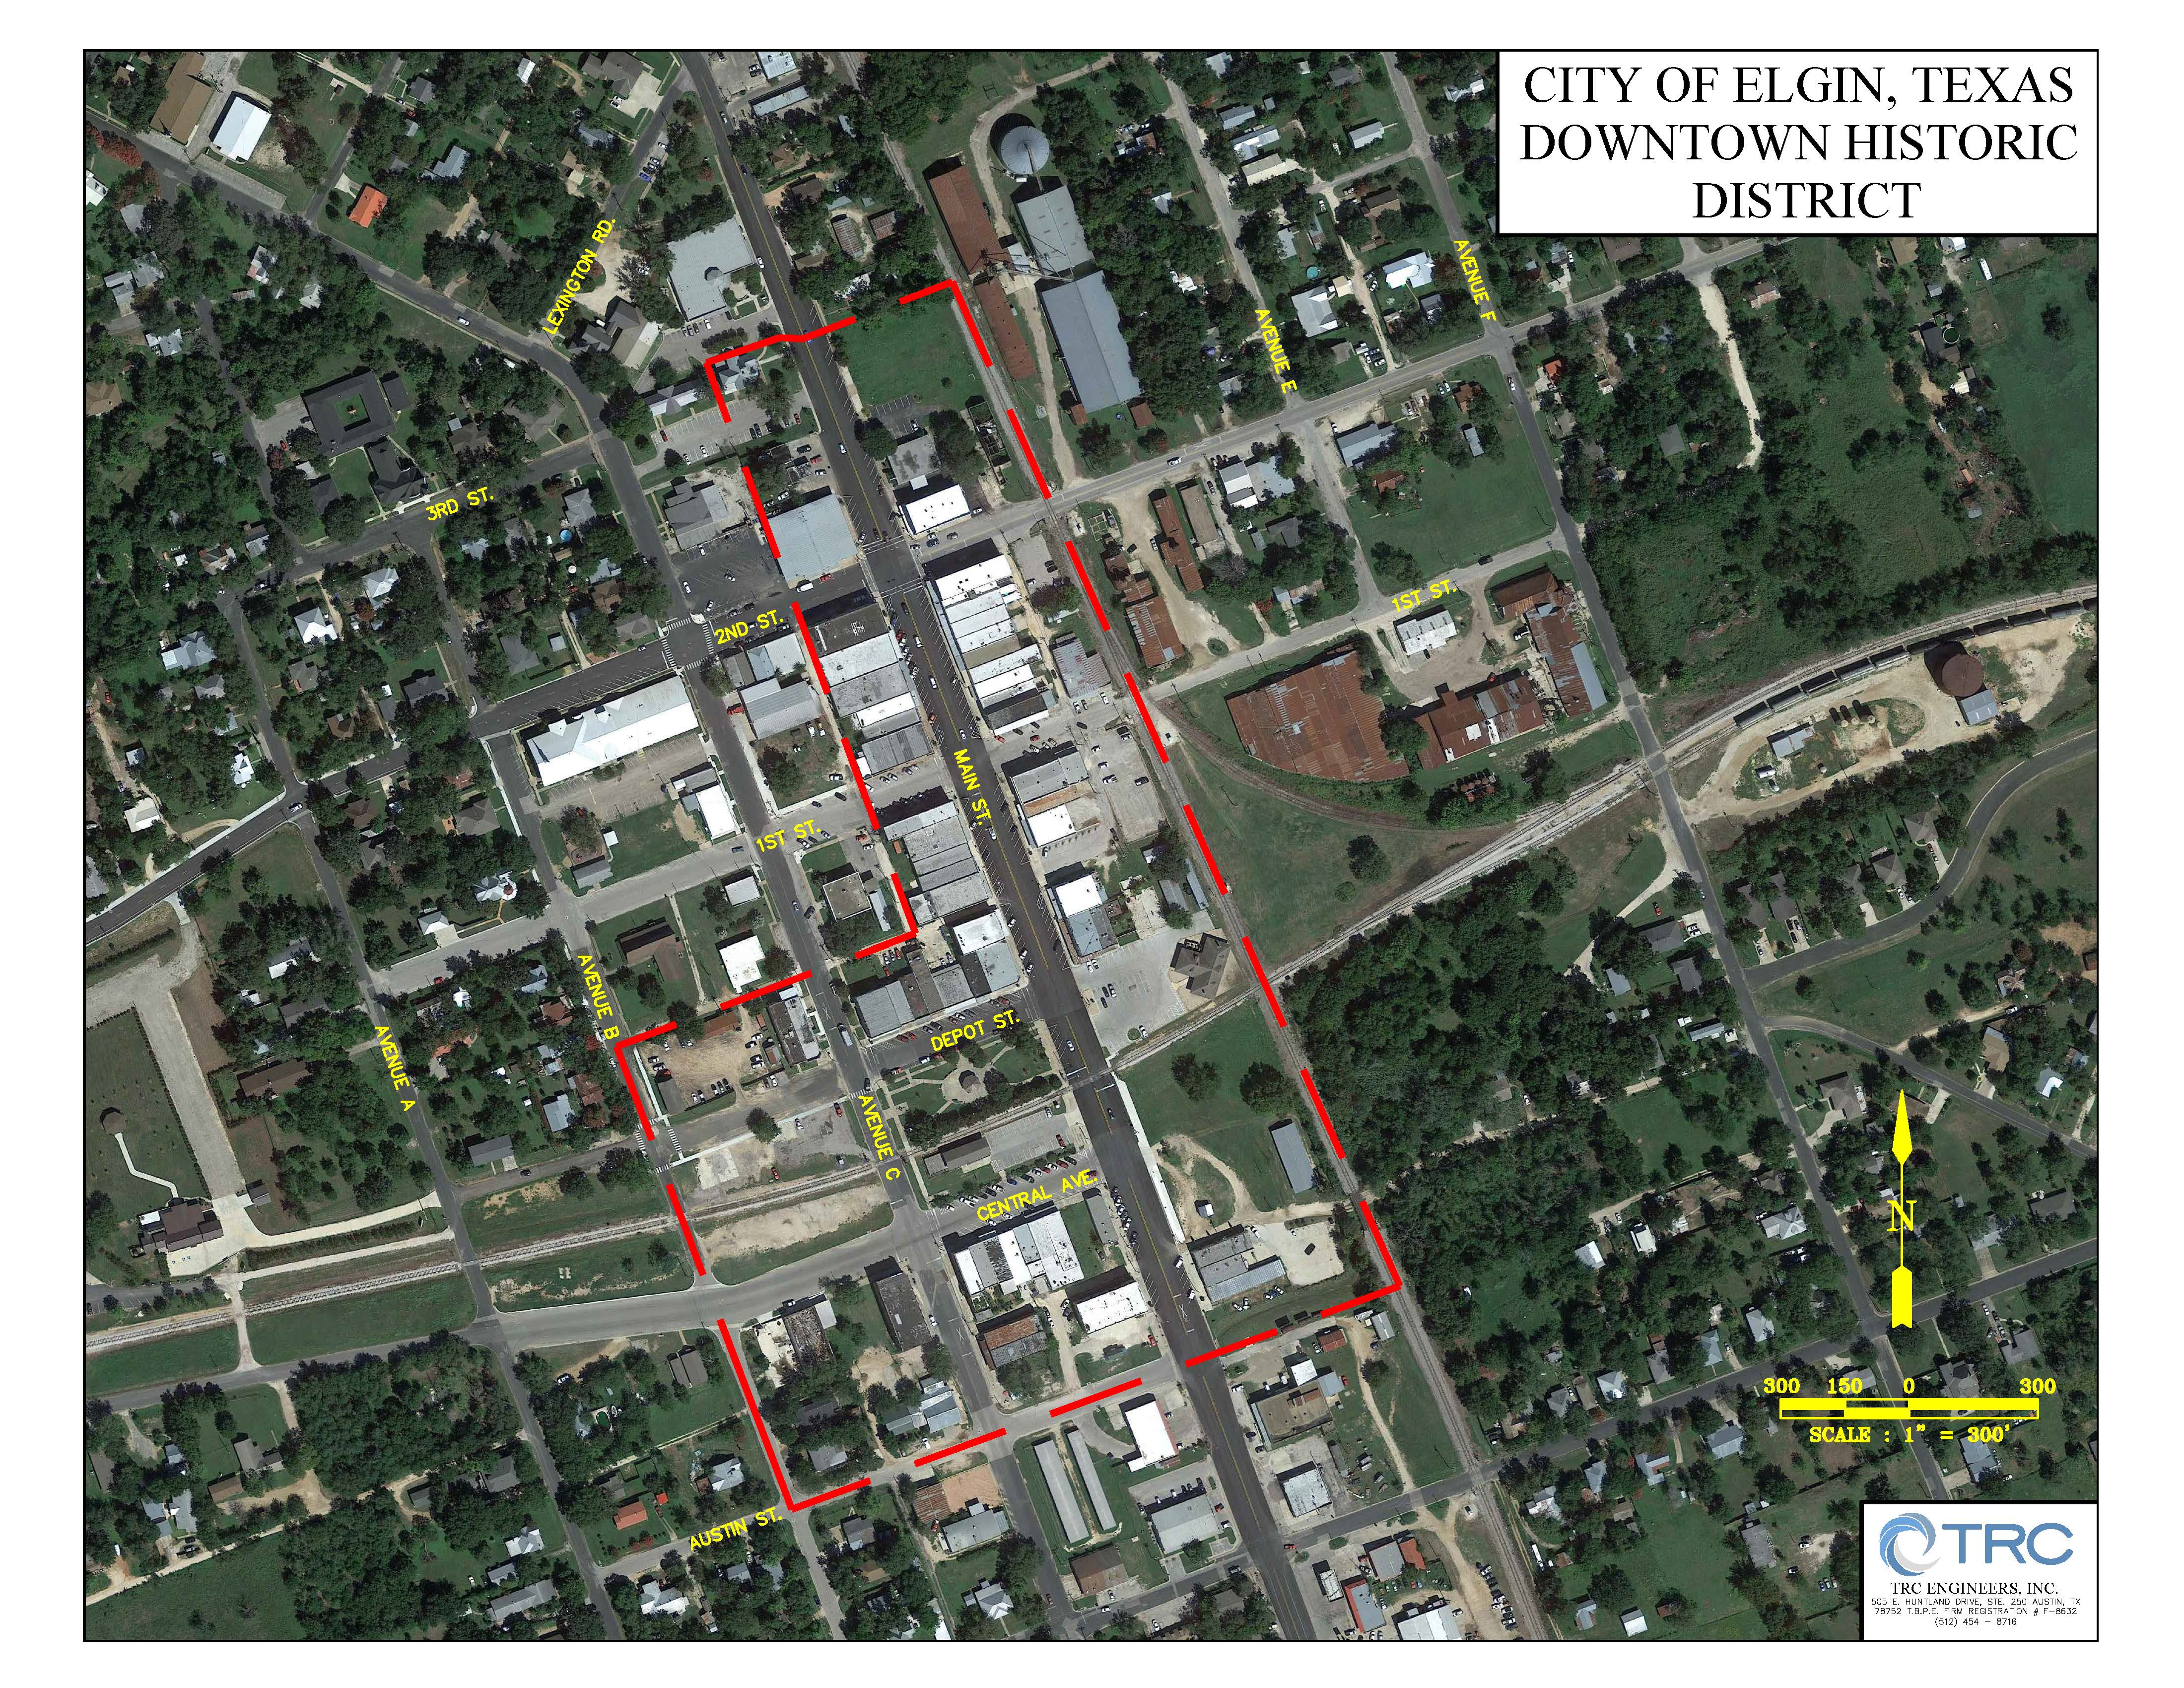 Historic Downtown District Map